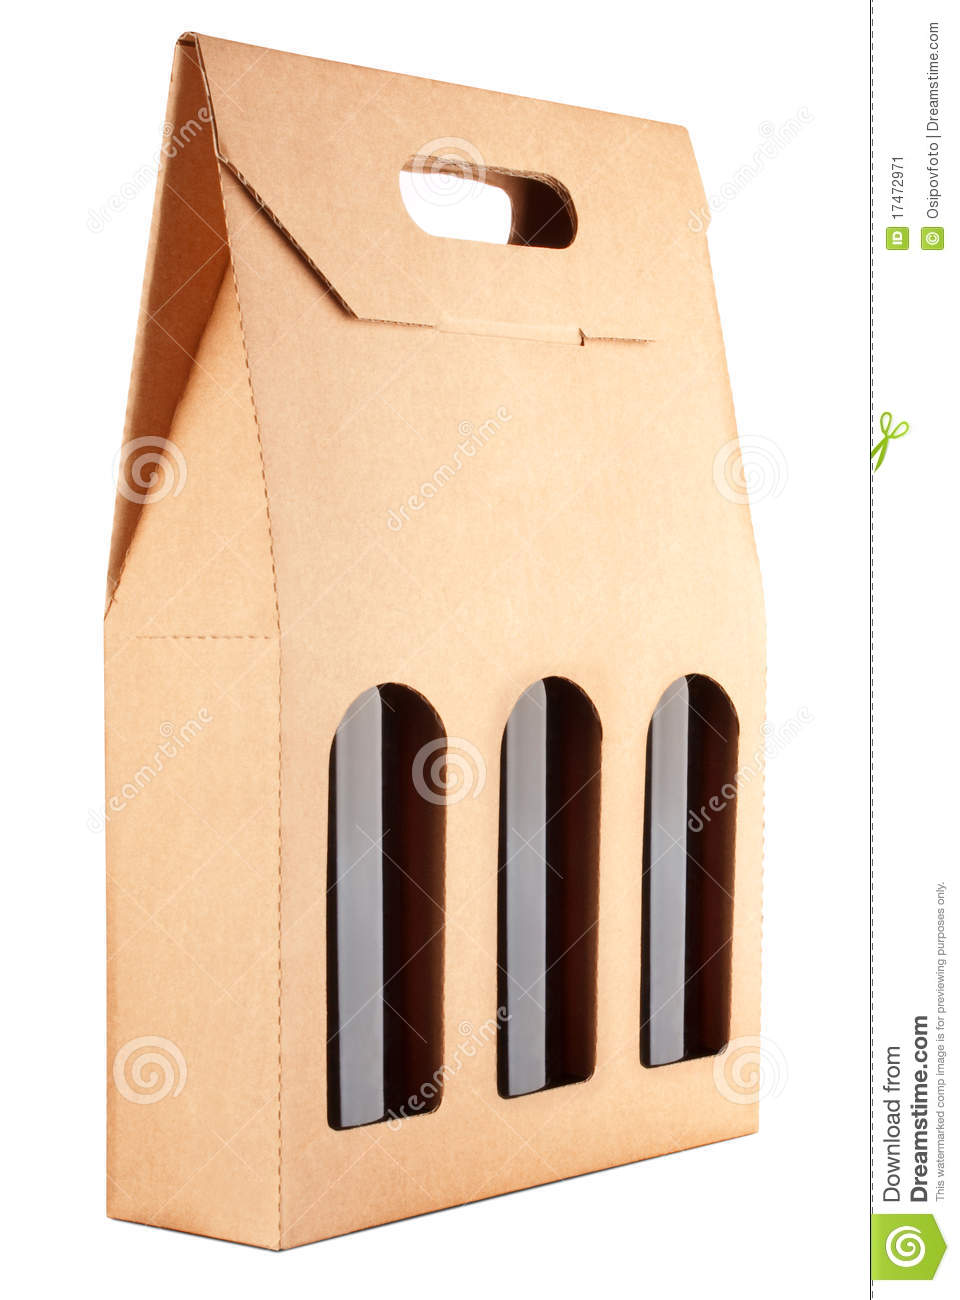 Cardboard Pack With Three Bottles Of Wine Stock Image